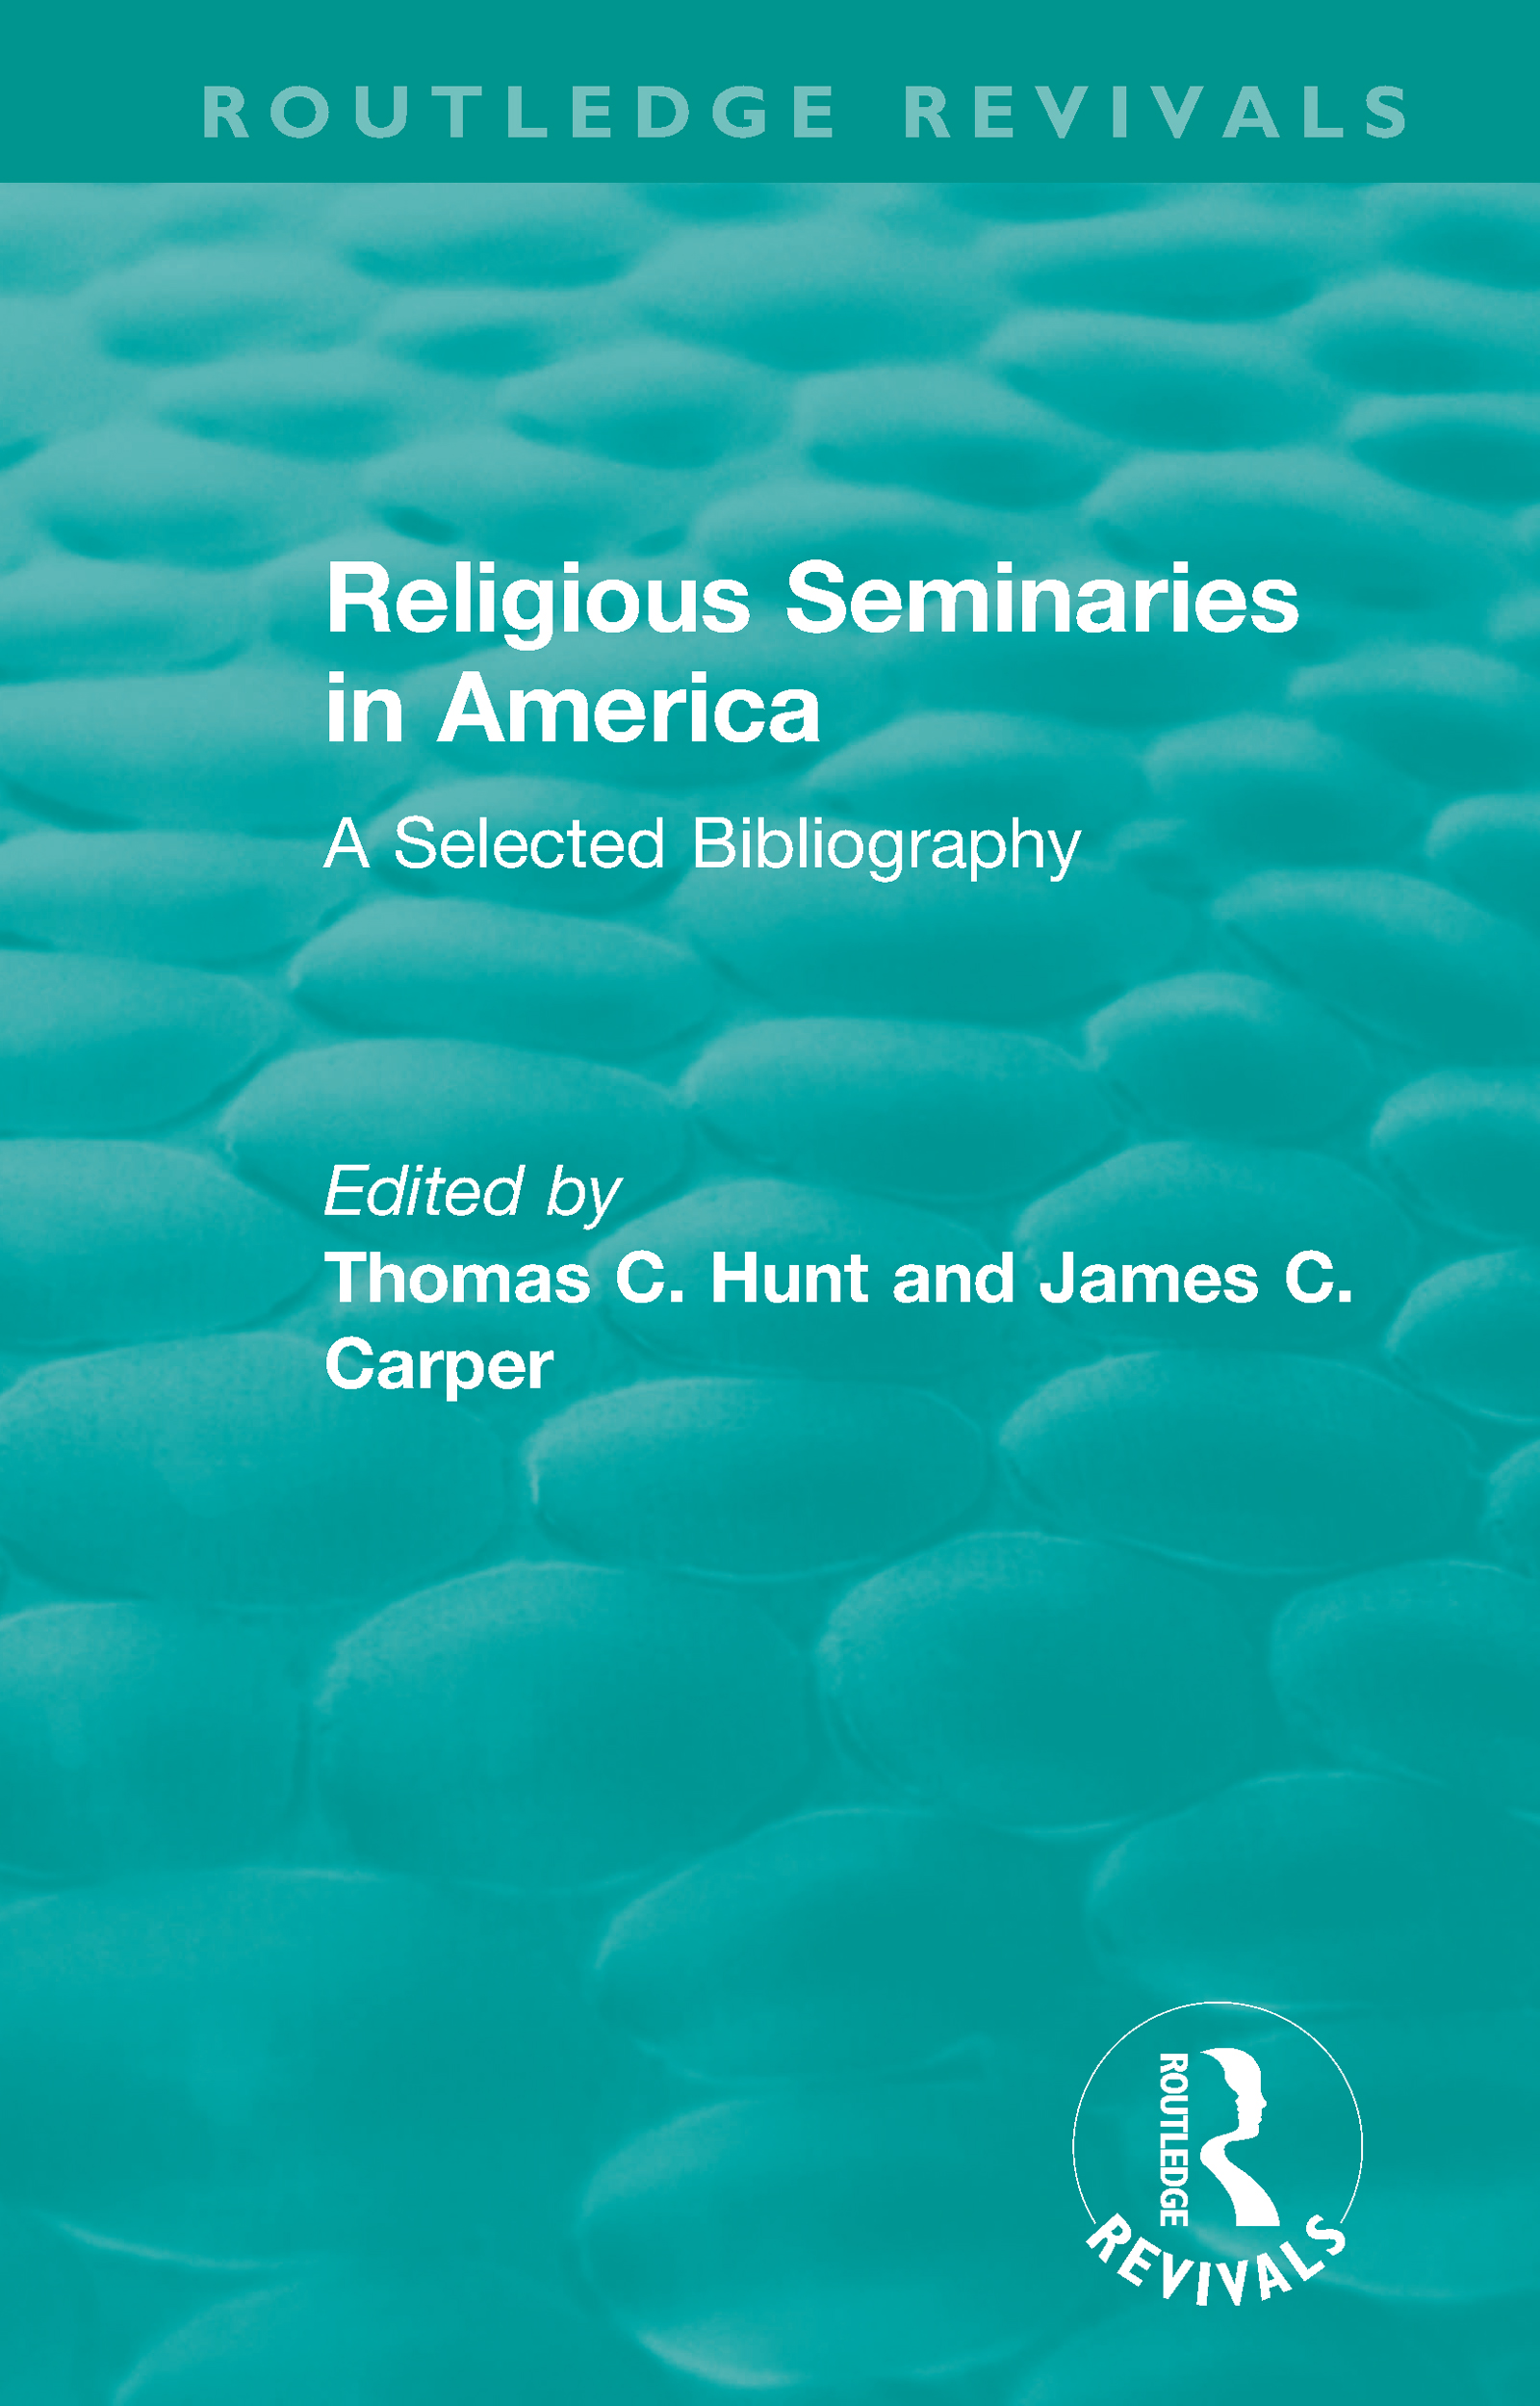 Religious Seminaries in America (1989): A Selected Bibliography book cover